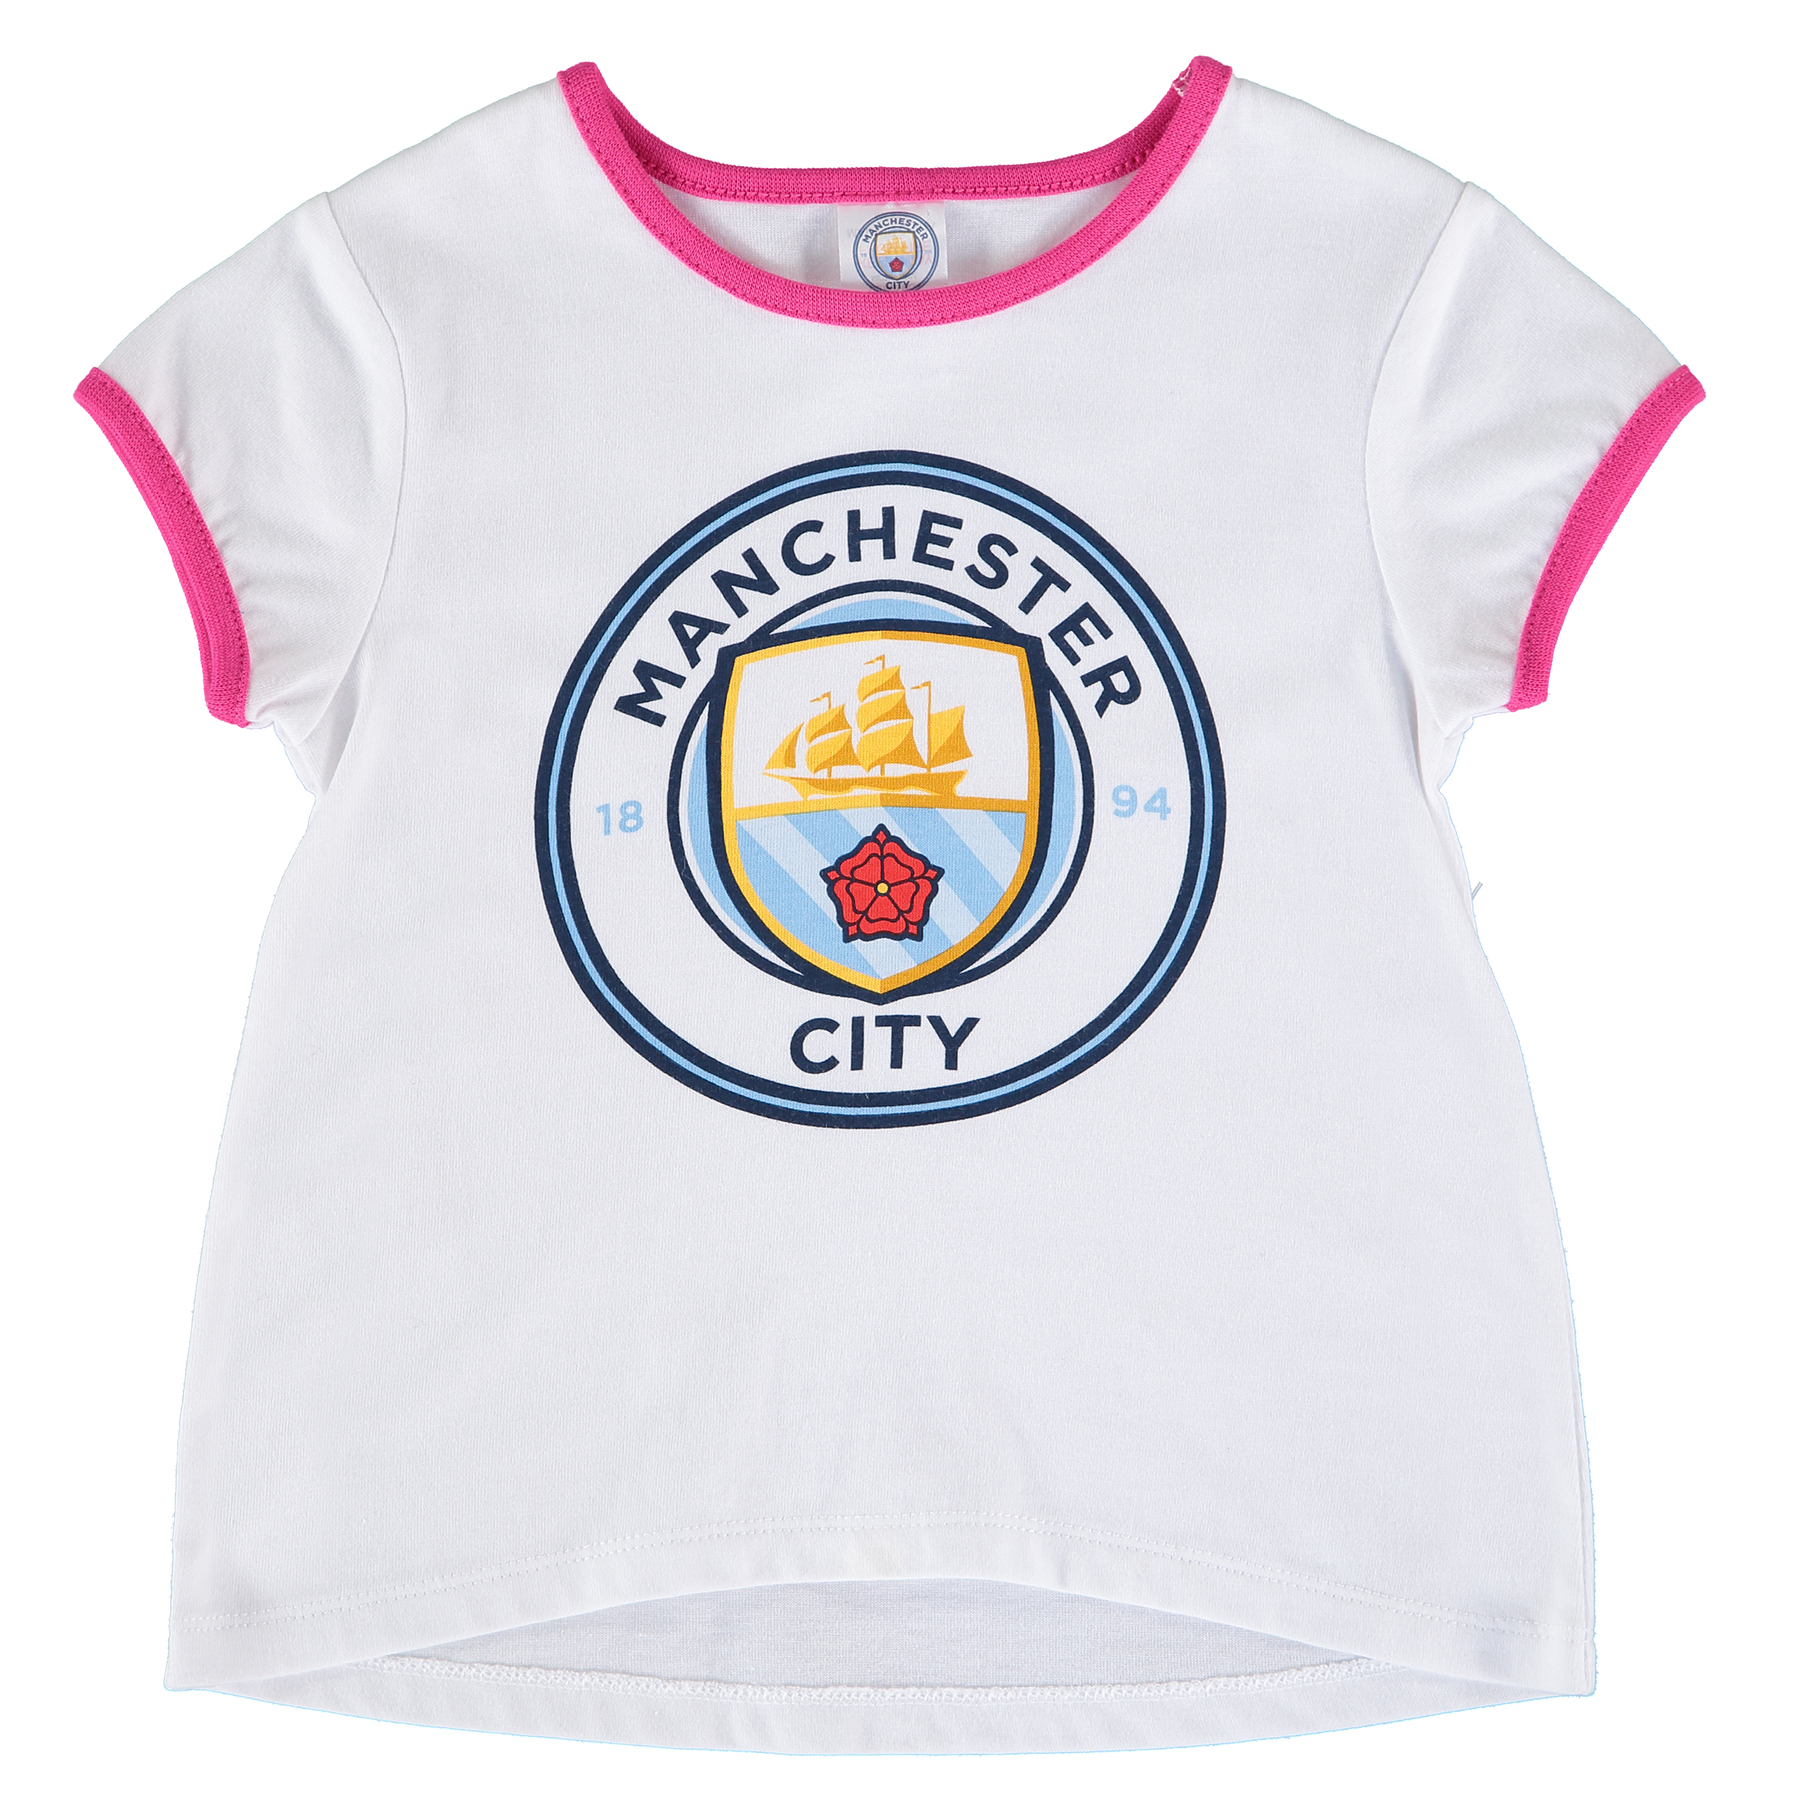 Manchester City Crest T-Shirt - White/Pink - Baby